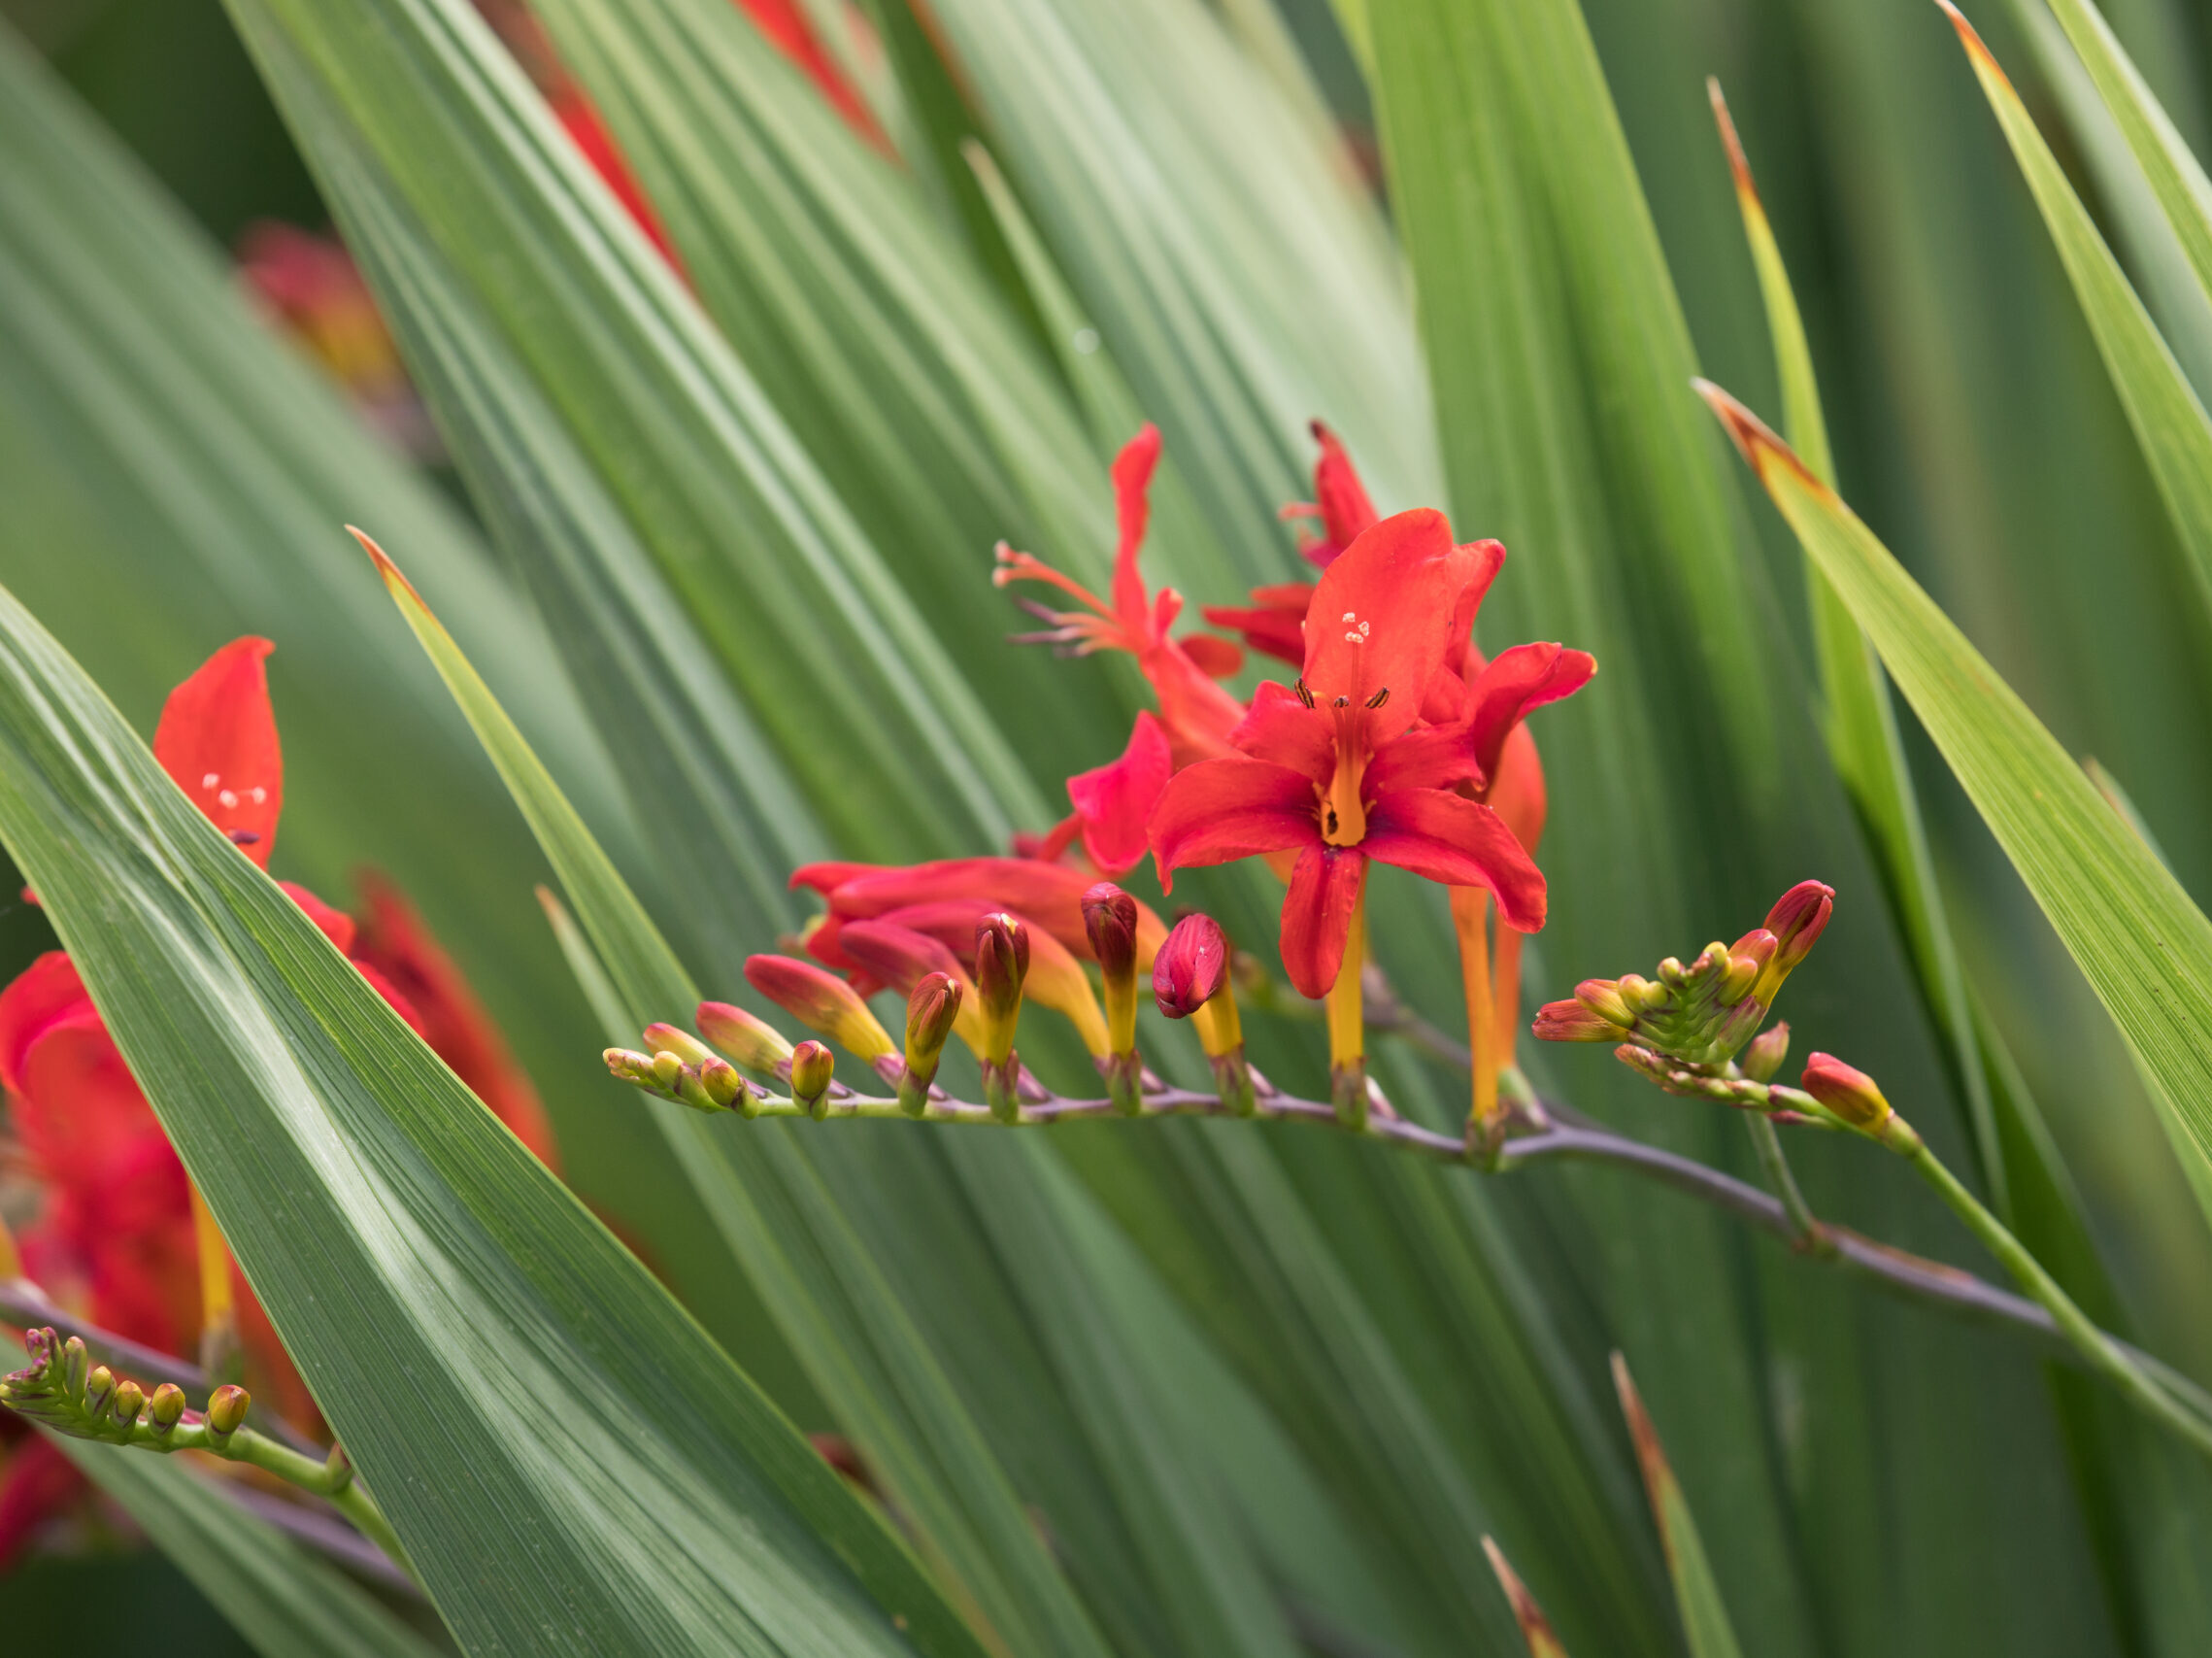 Red blooms on the Crocosmia Flowers